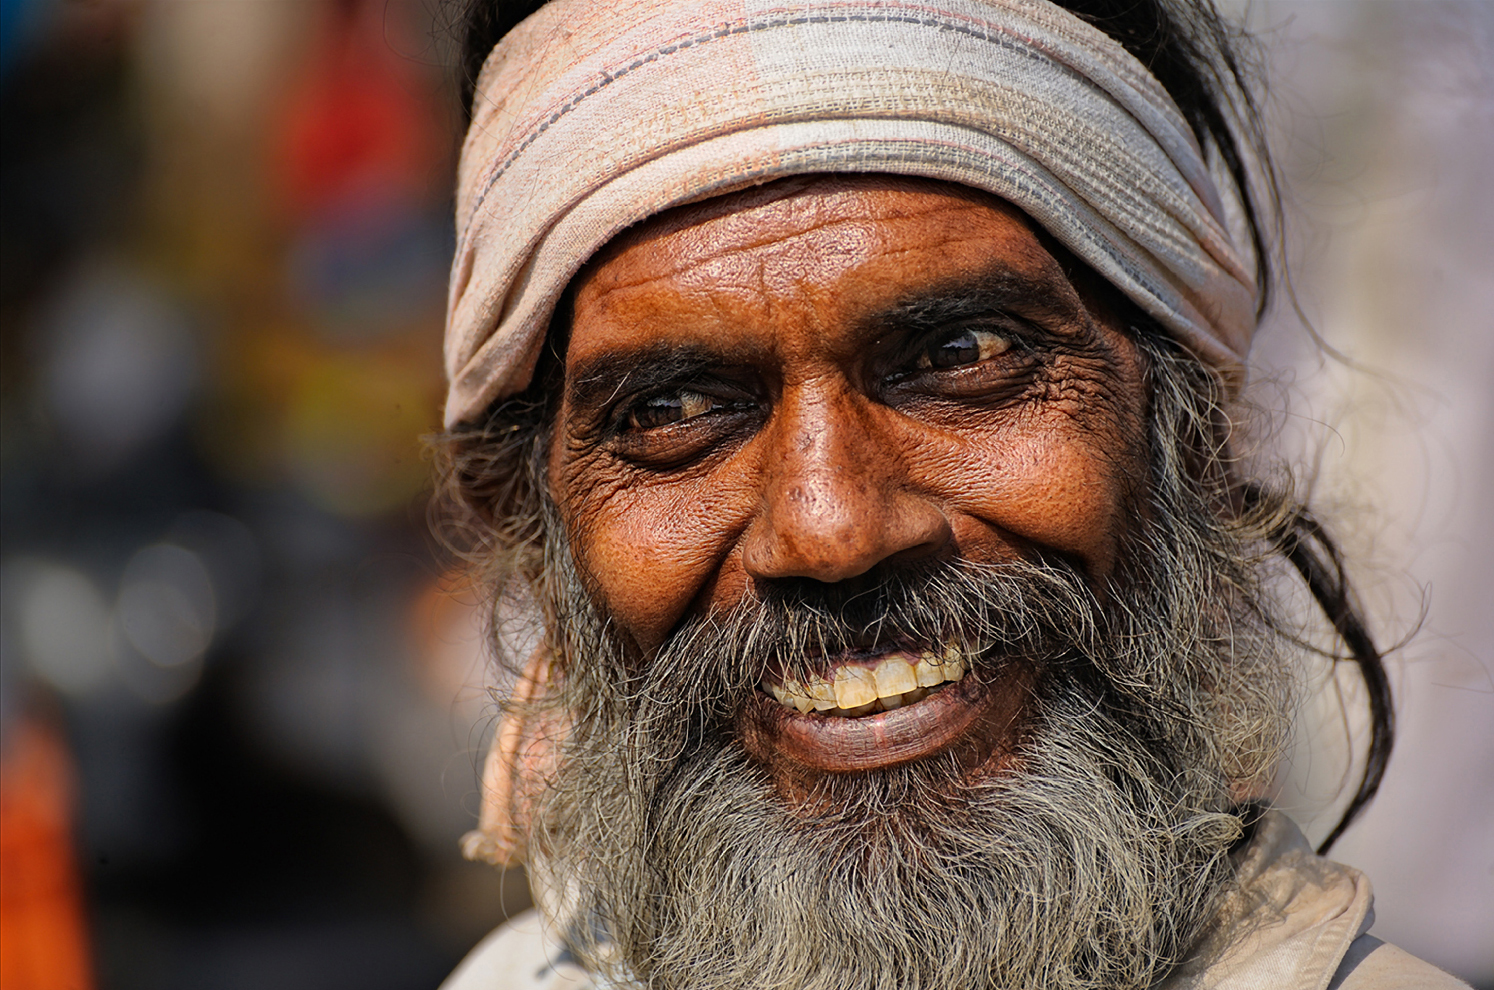 people of india India has the second most largest population in the world it also houses the largest poor people in the world poor people in india is a reality.